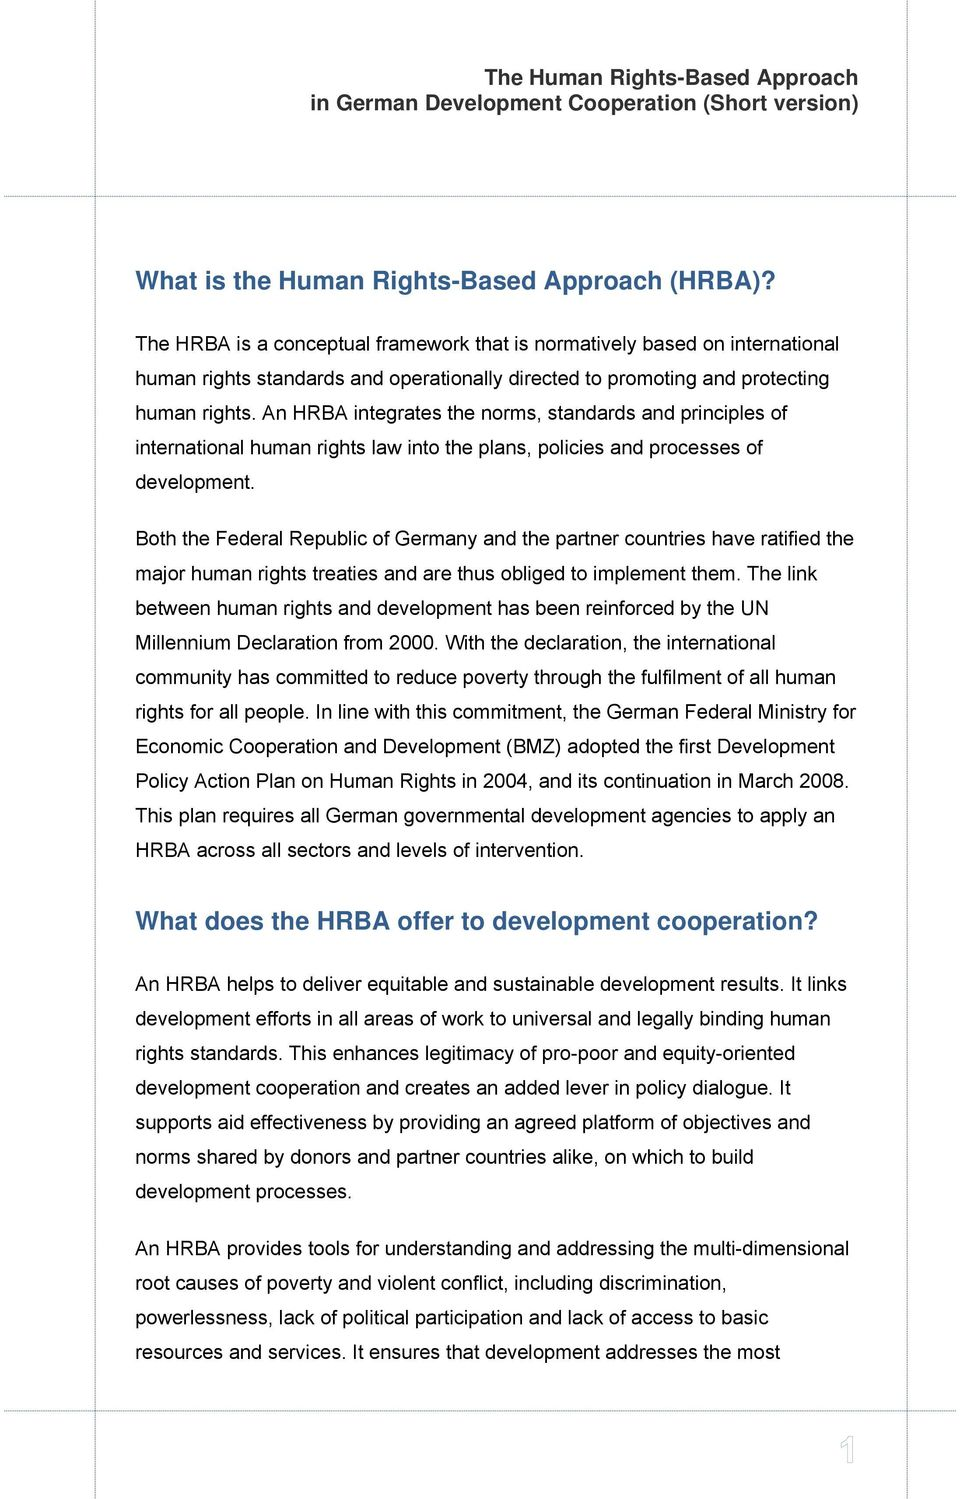 An HRBA integrates the norms, standards and principles of international human rights law into the plans, policies and processes of development.